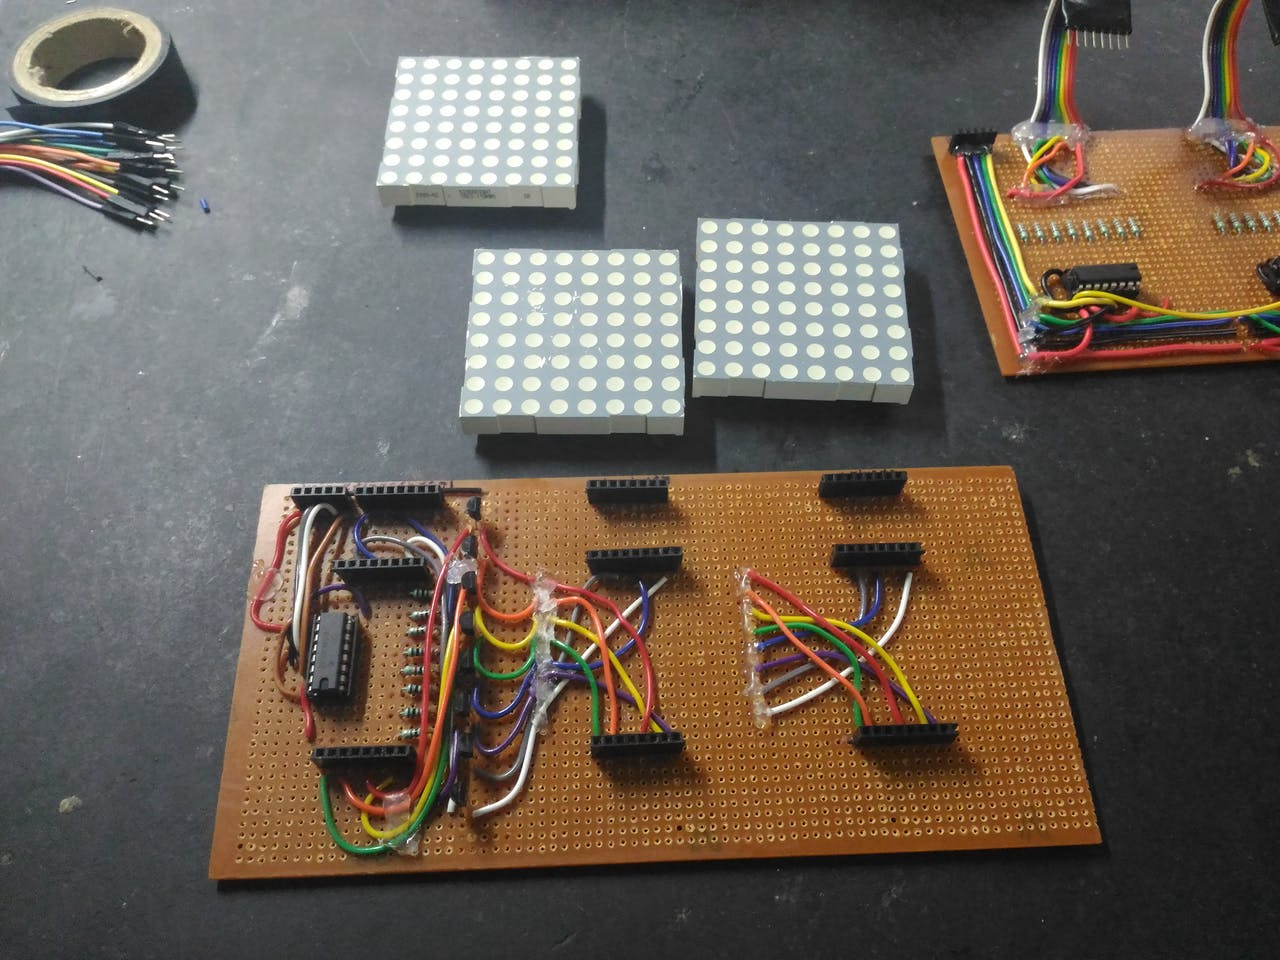 48 X 8 Scrolling Led Matrix Using Arduino Circuit Digest Electronic Circuits Projects Community